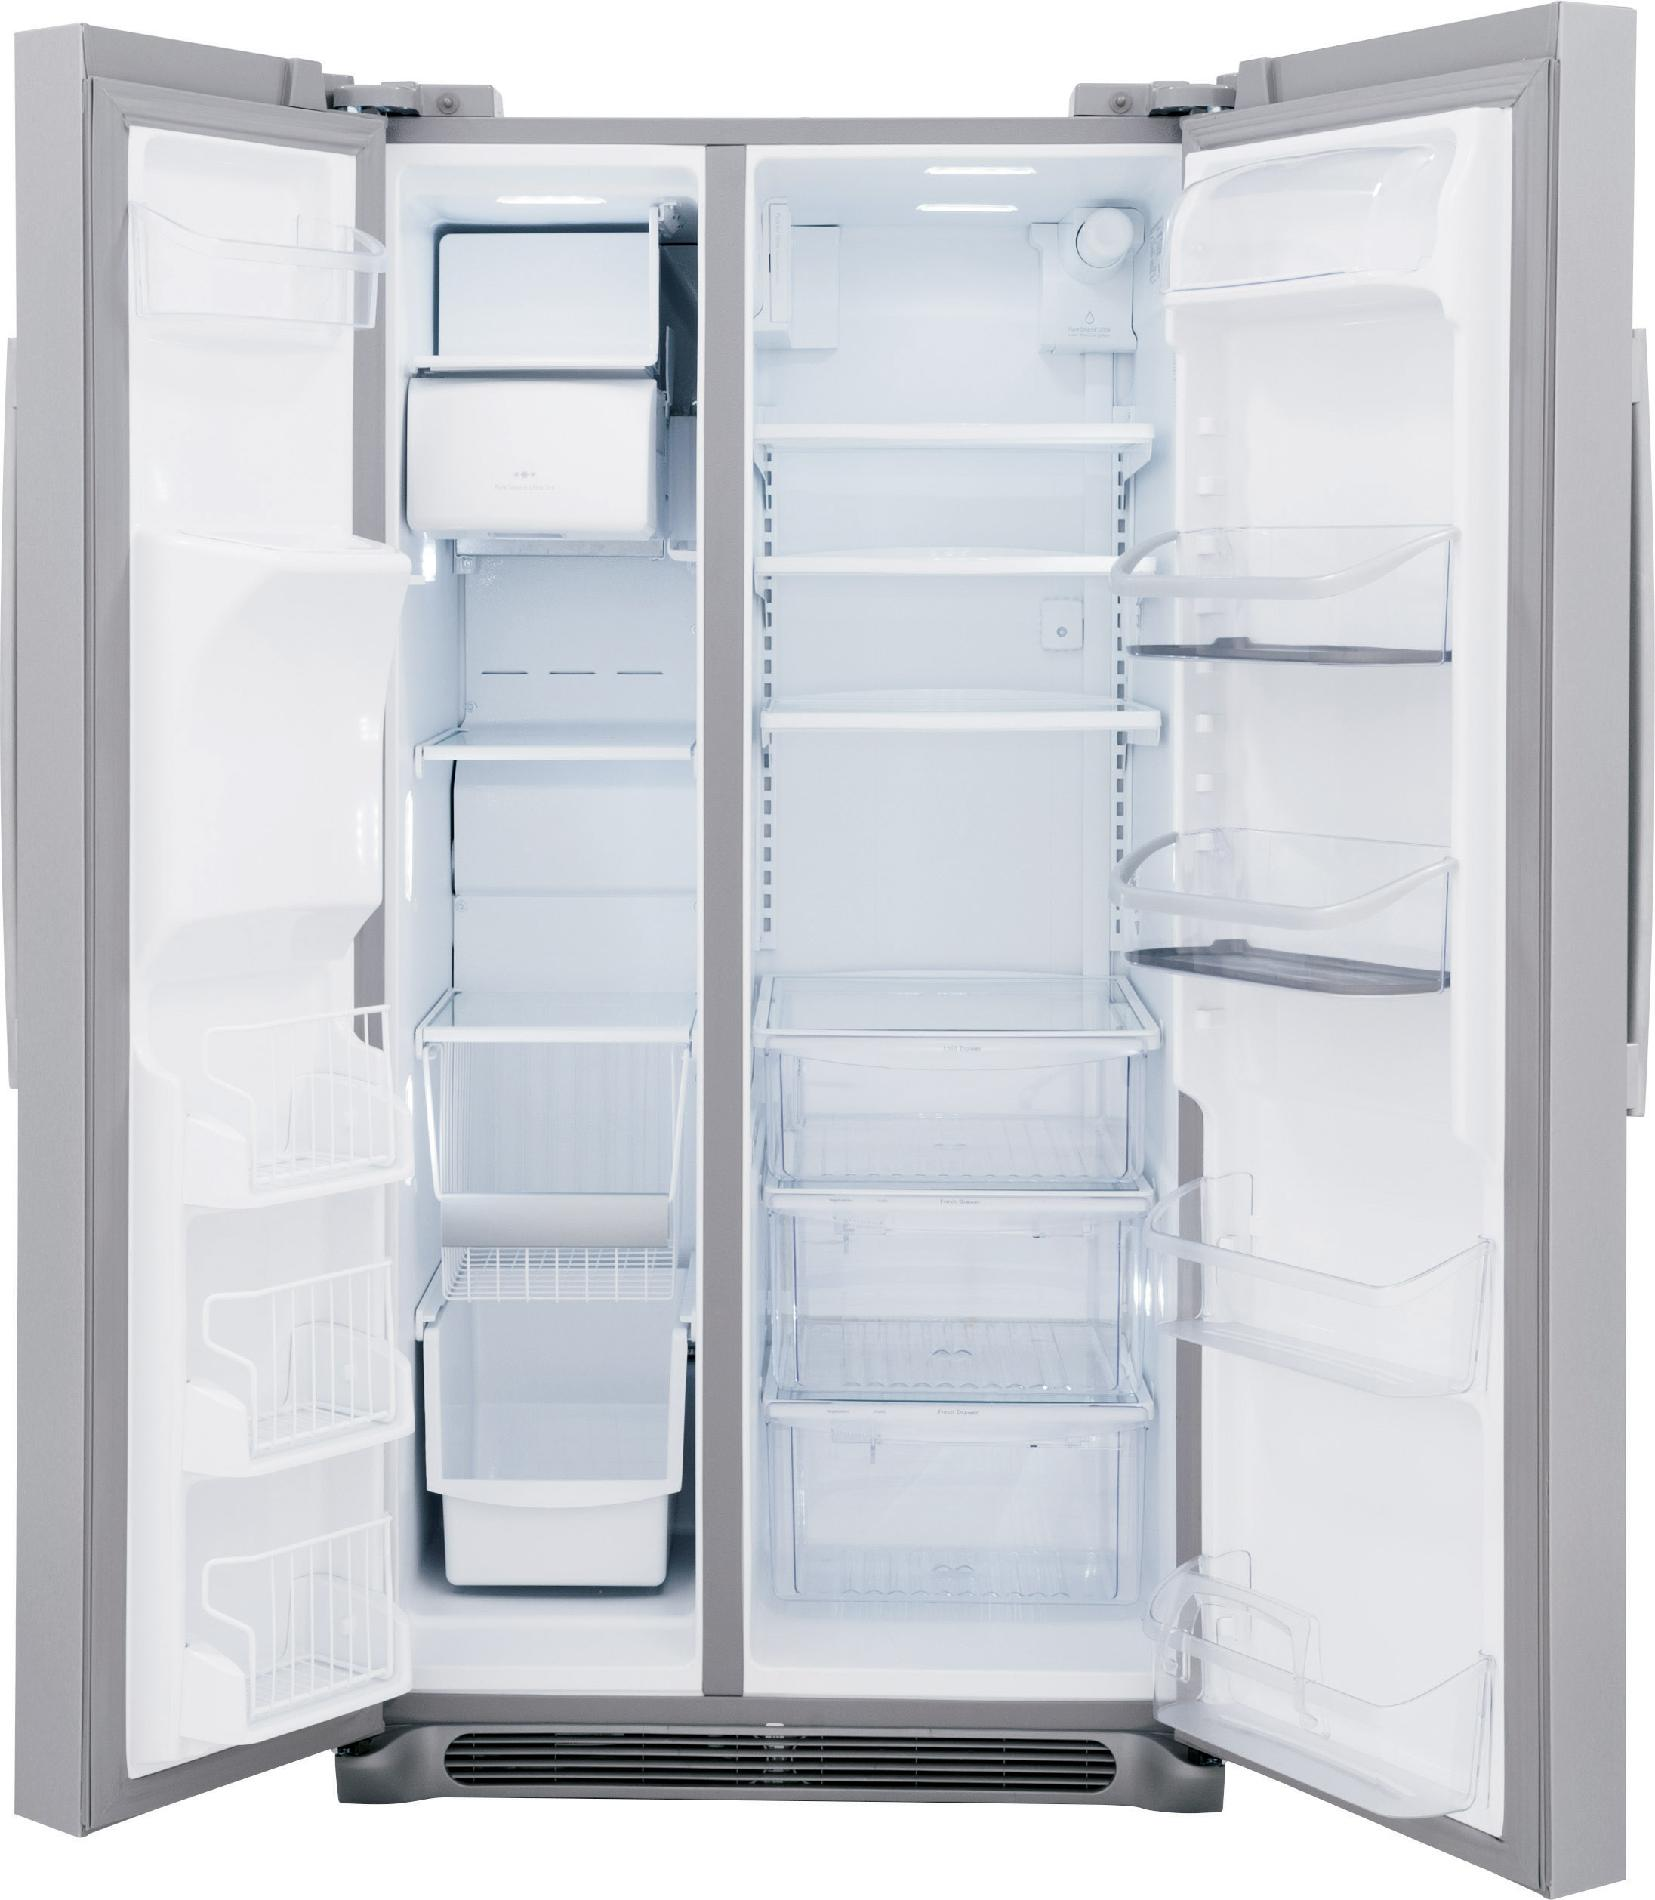 Frigidaire Professional 26.0 cu. ft. Side-by-Side Refrigerator - Stainless Steel